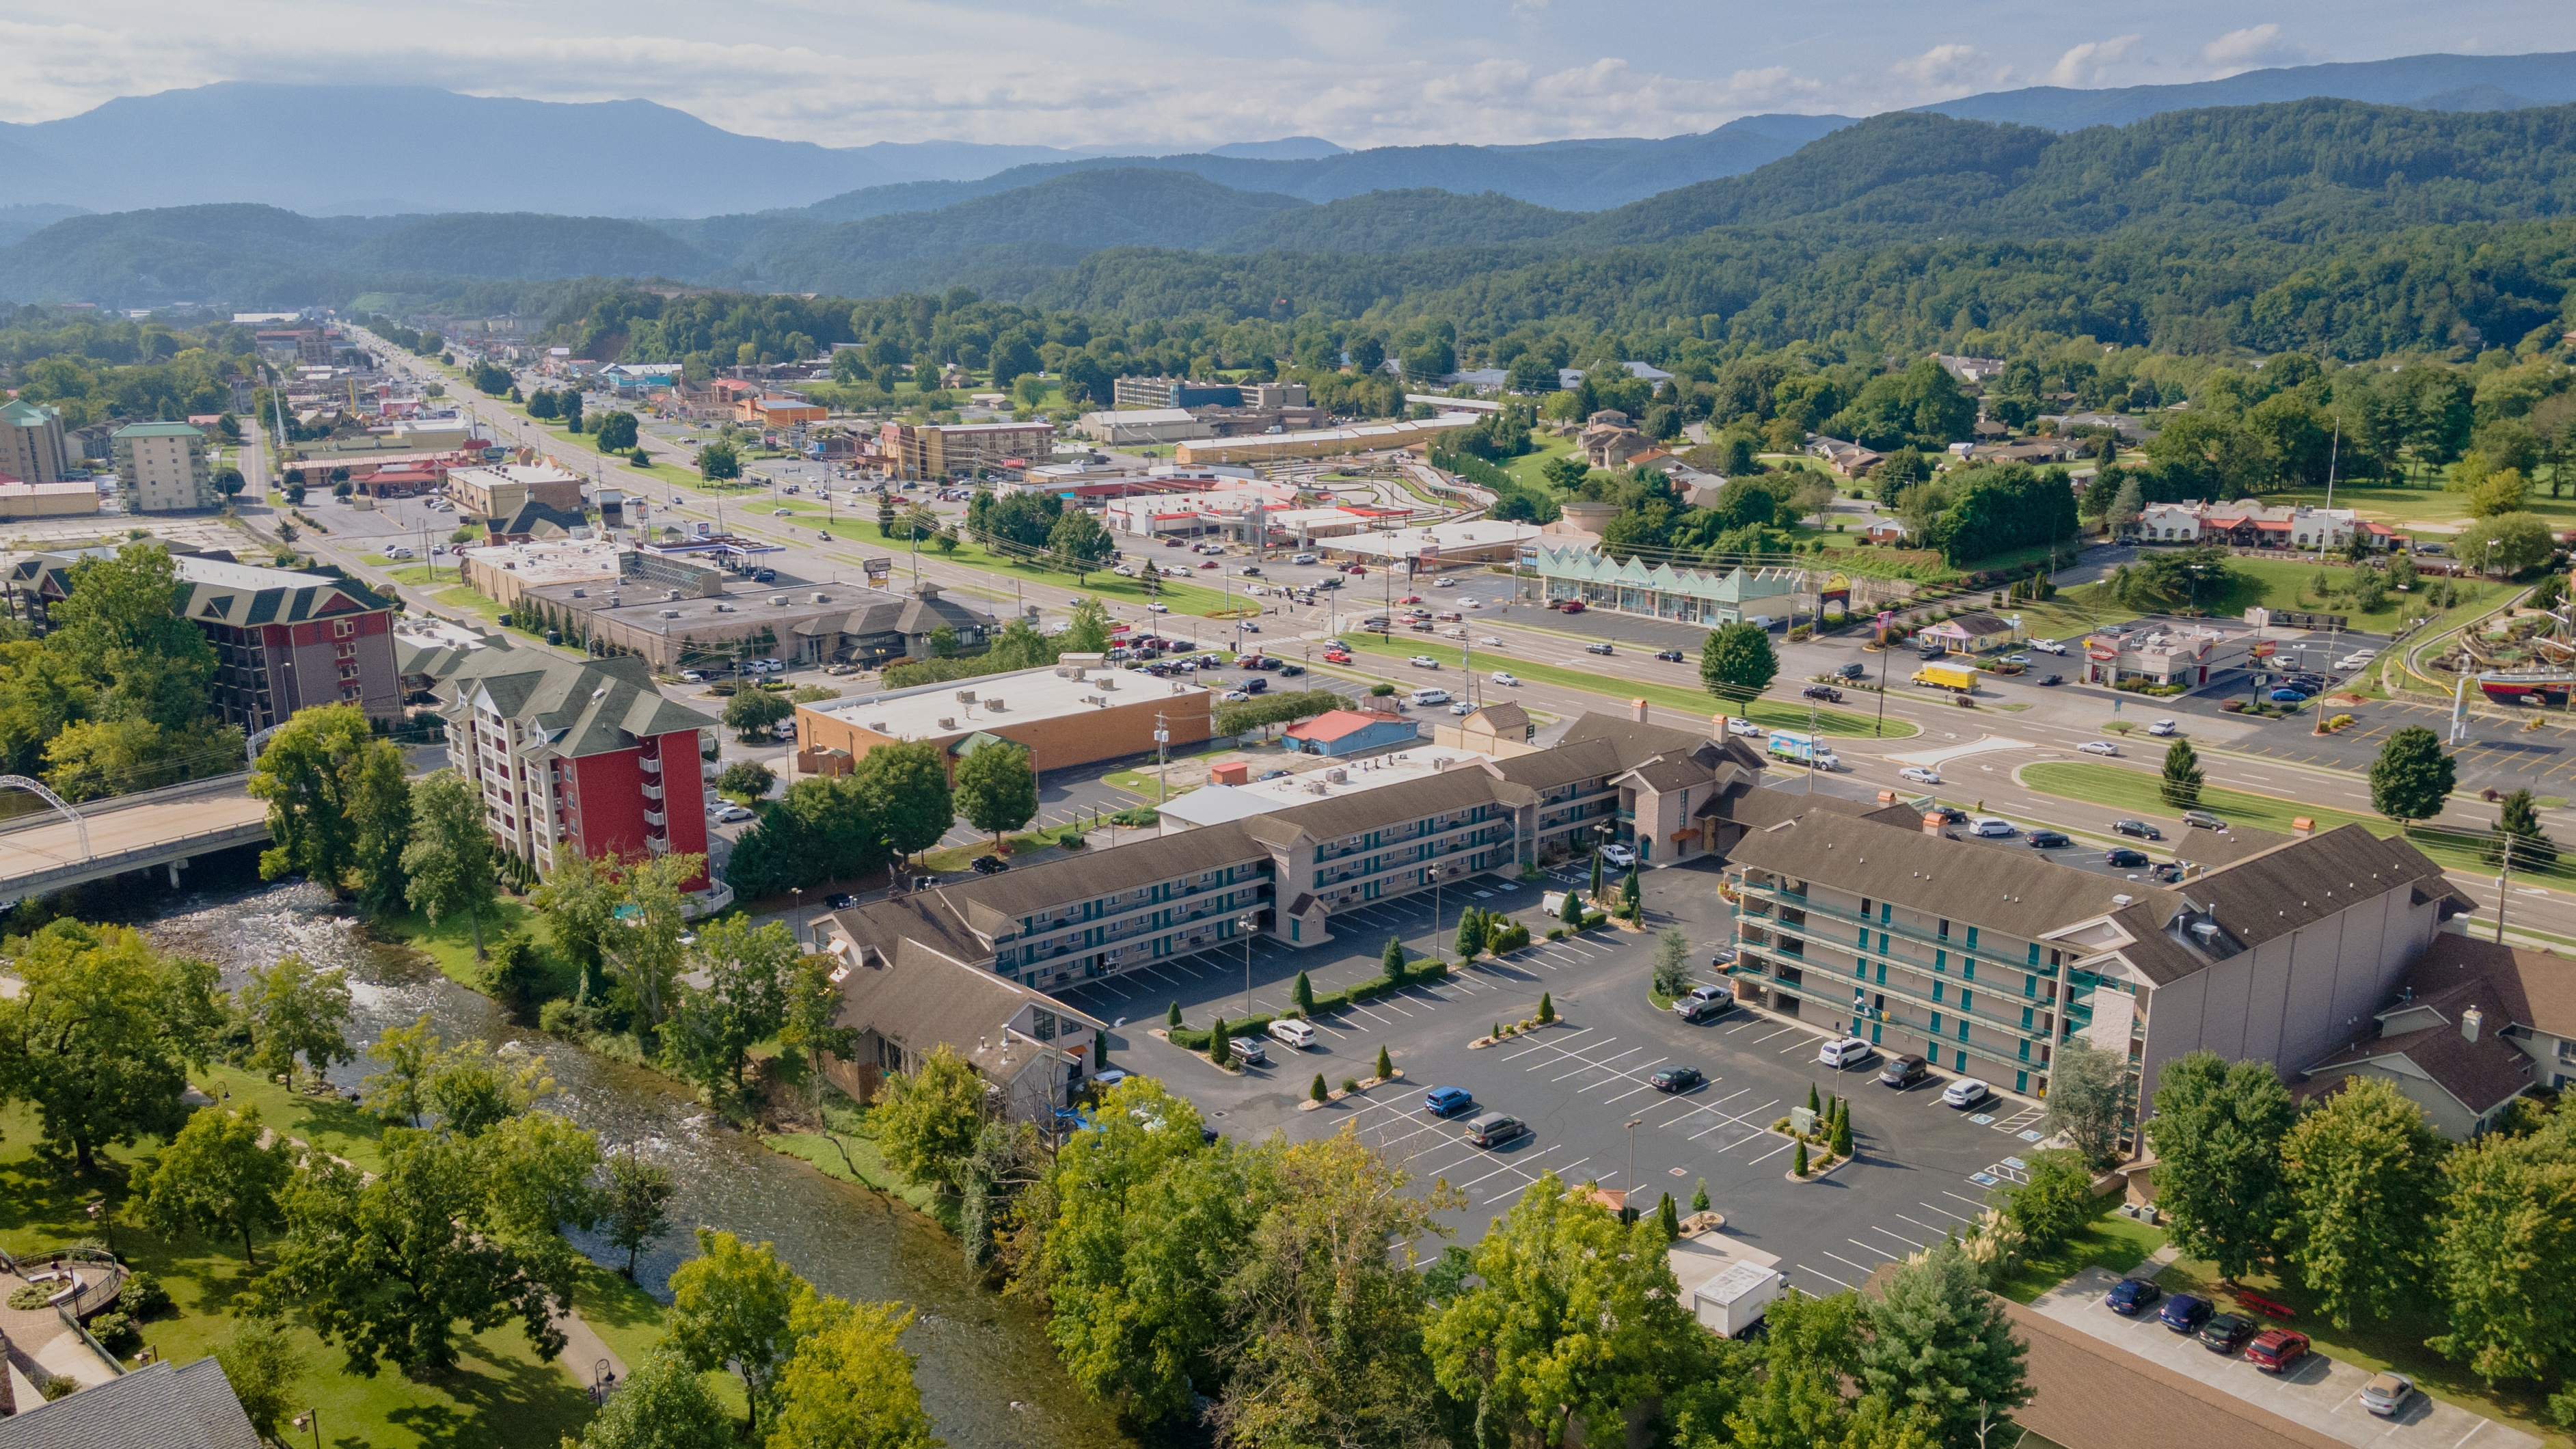 Pigeon Forge Hotel with Best Location in Smoky Mountains